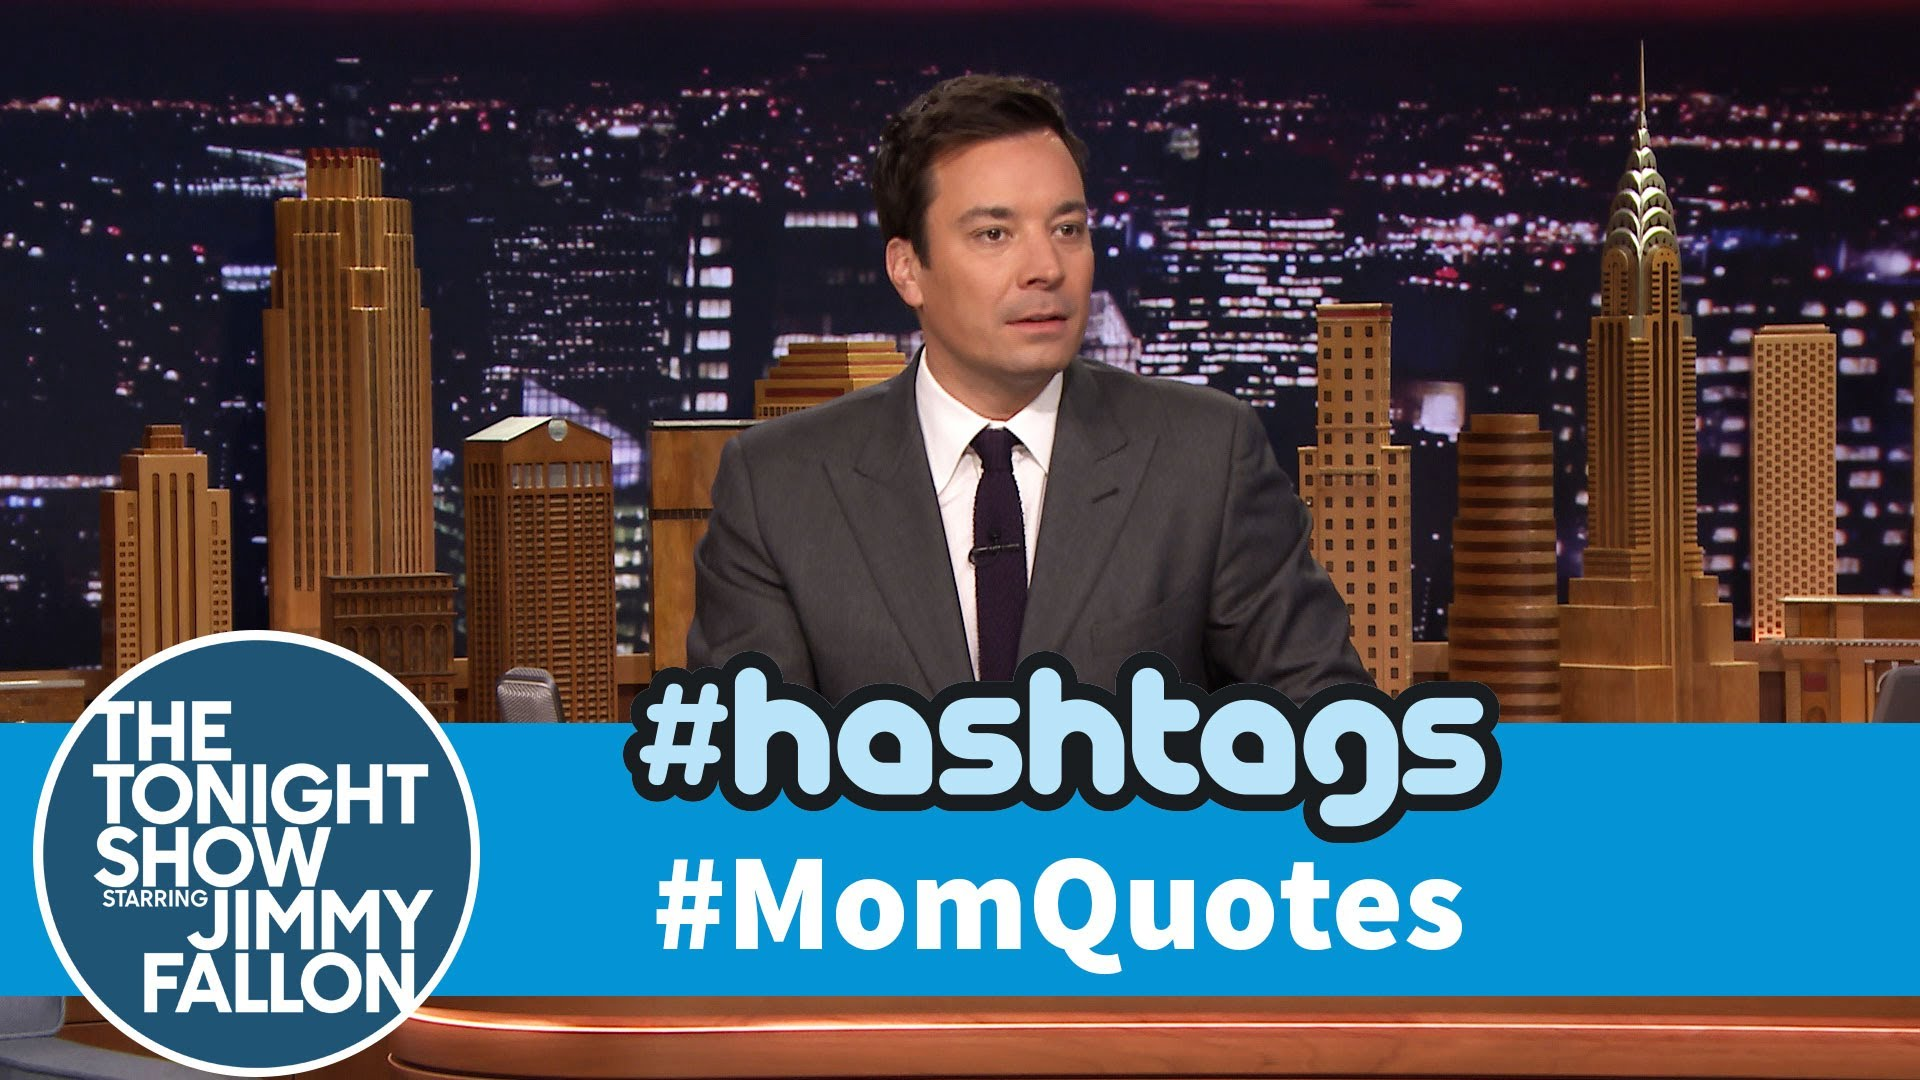 Still laughing about Jimmy Fallon's #MomQuotes